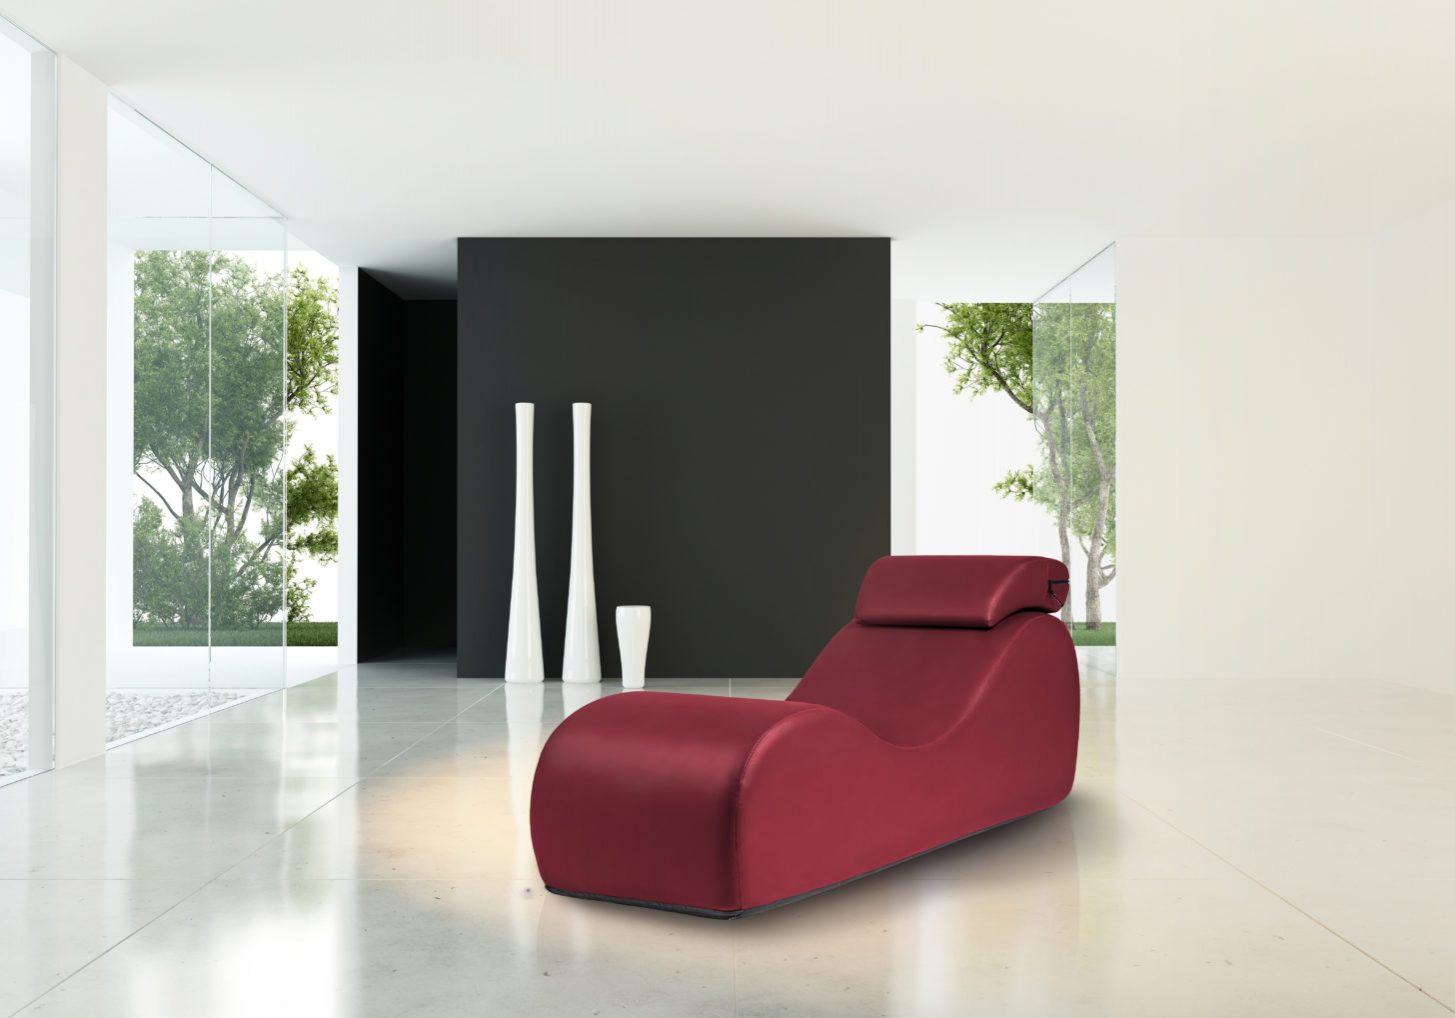 Chaise at Tantra Design